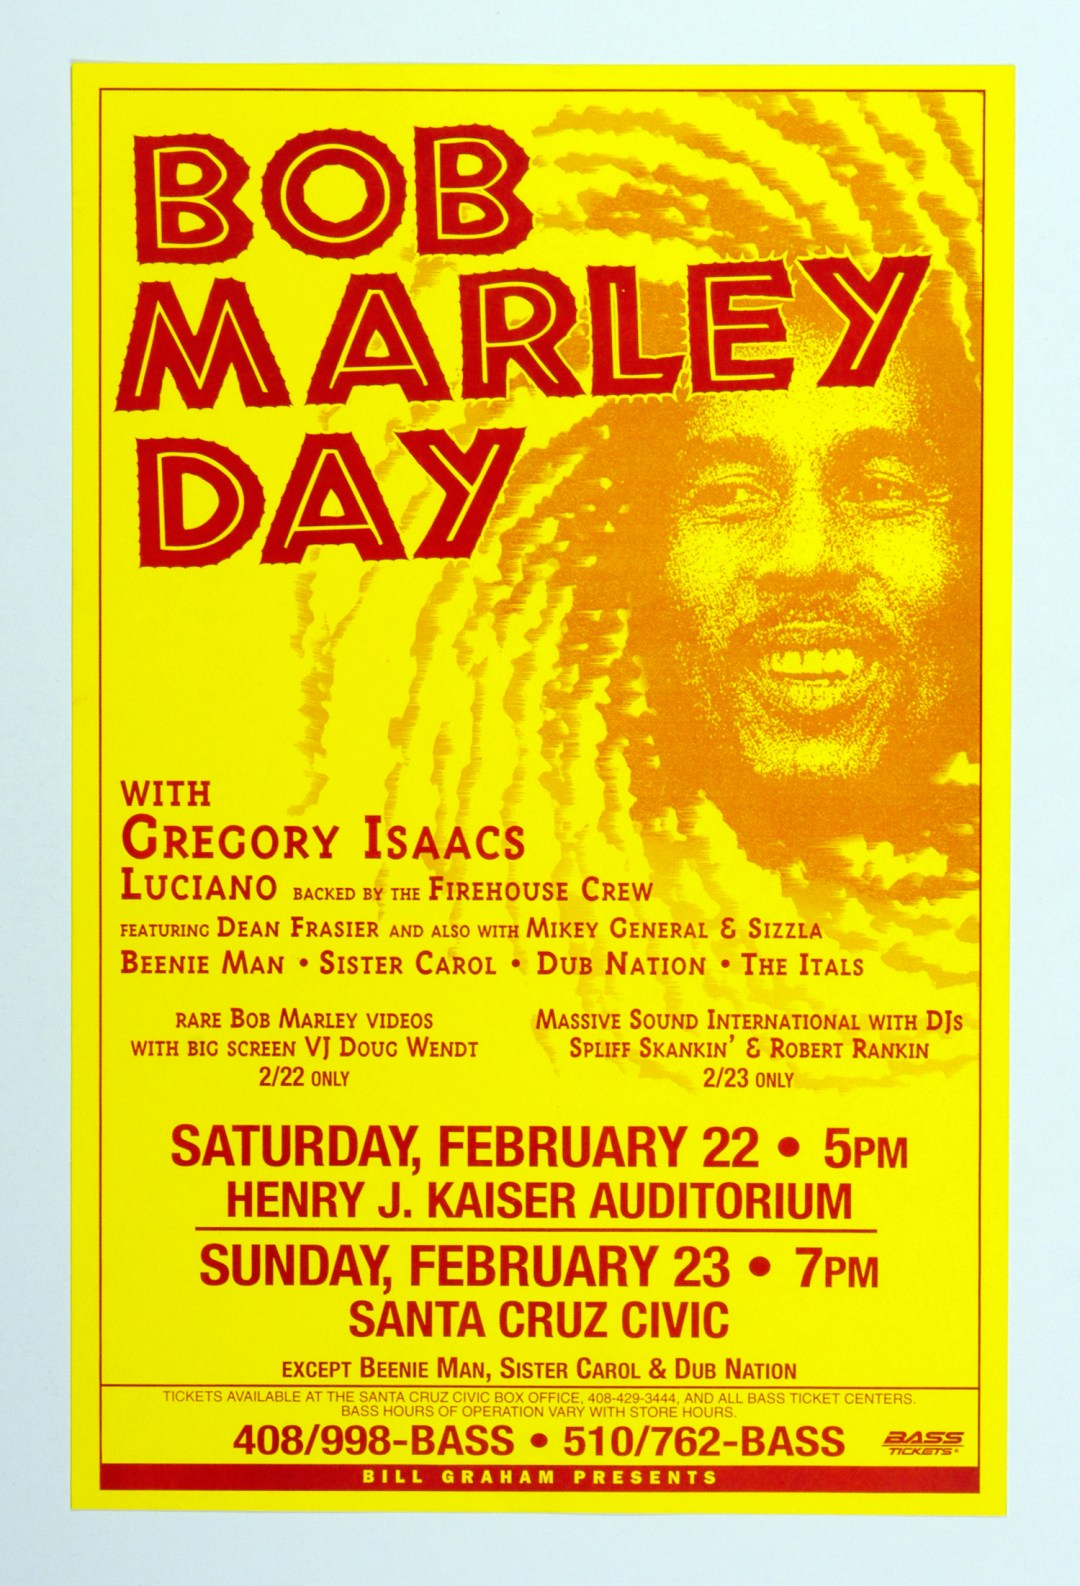 Bob Marley Celebration Day Gregory Isaacs Poster 1996 Feb 22 Oakland